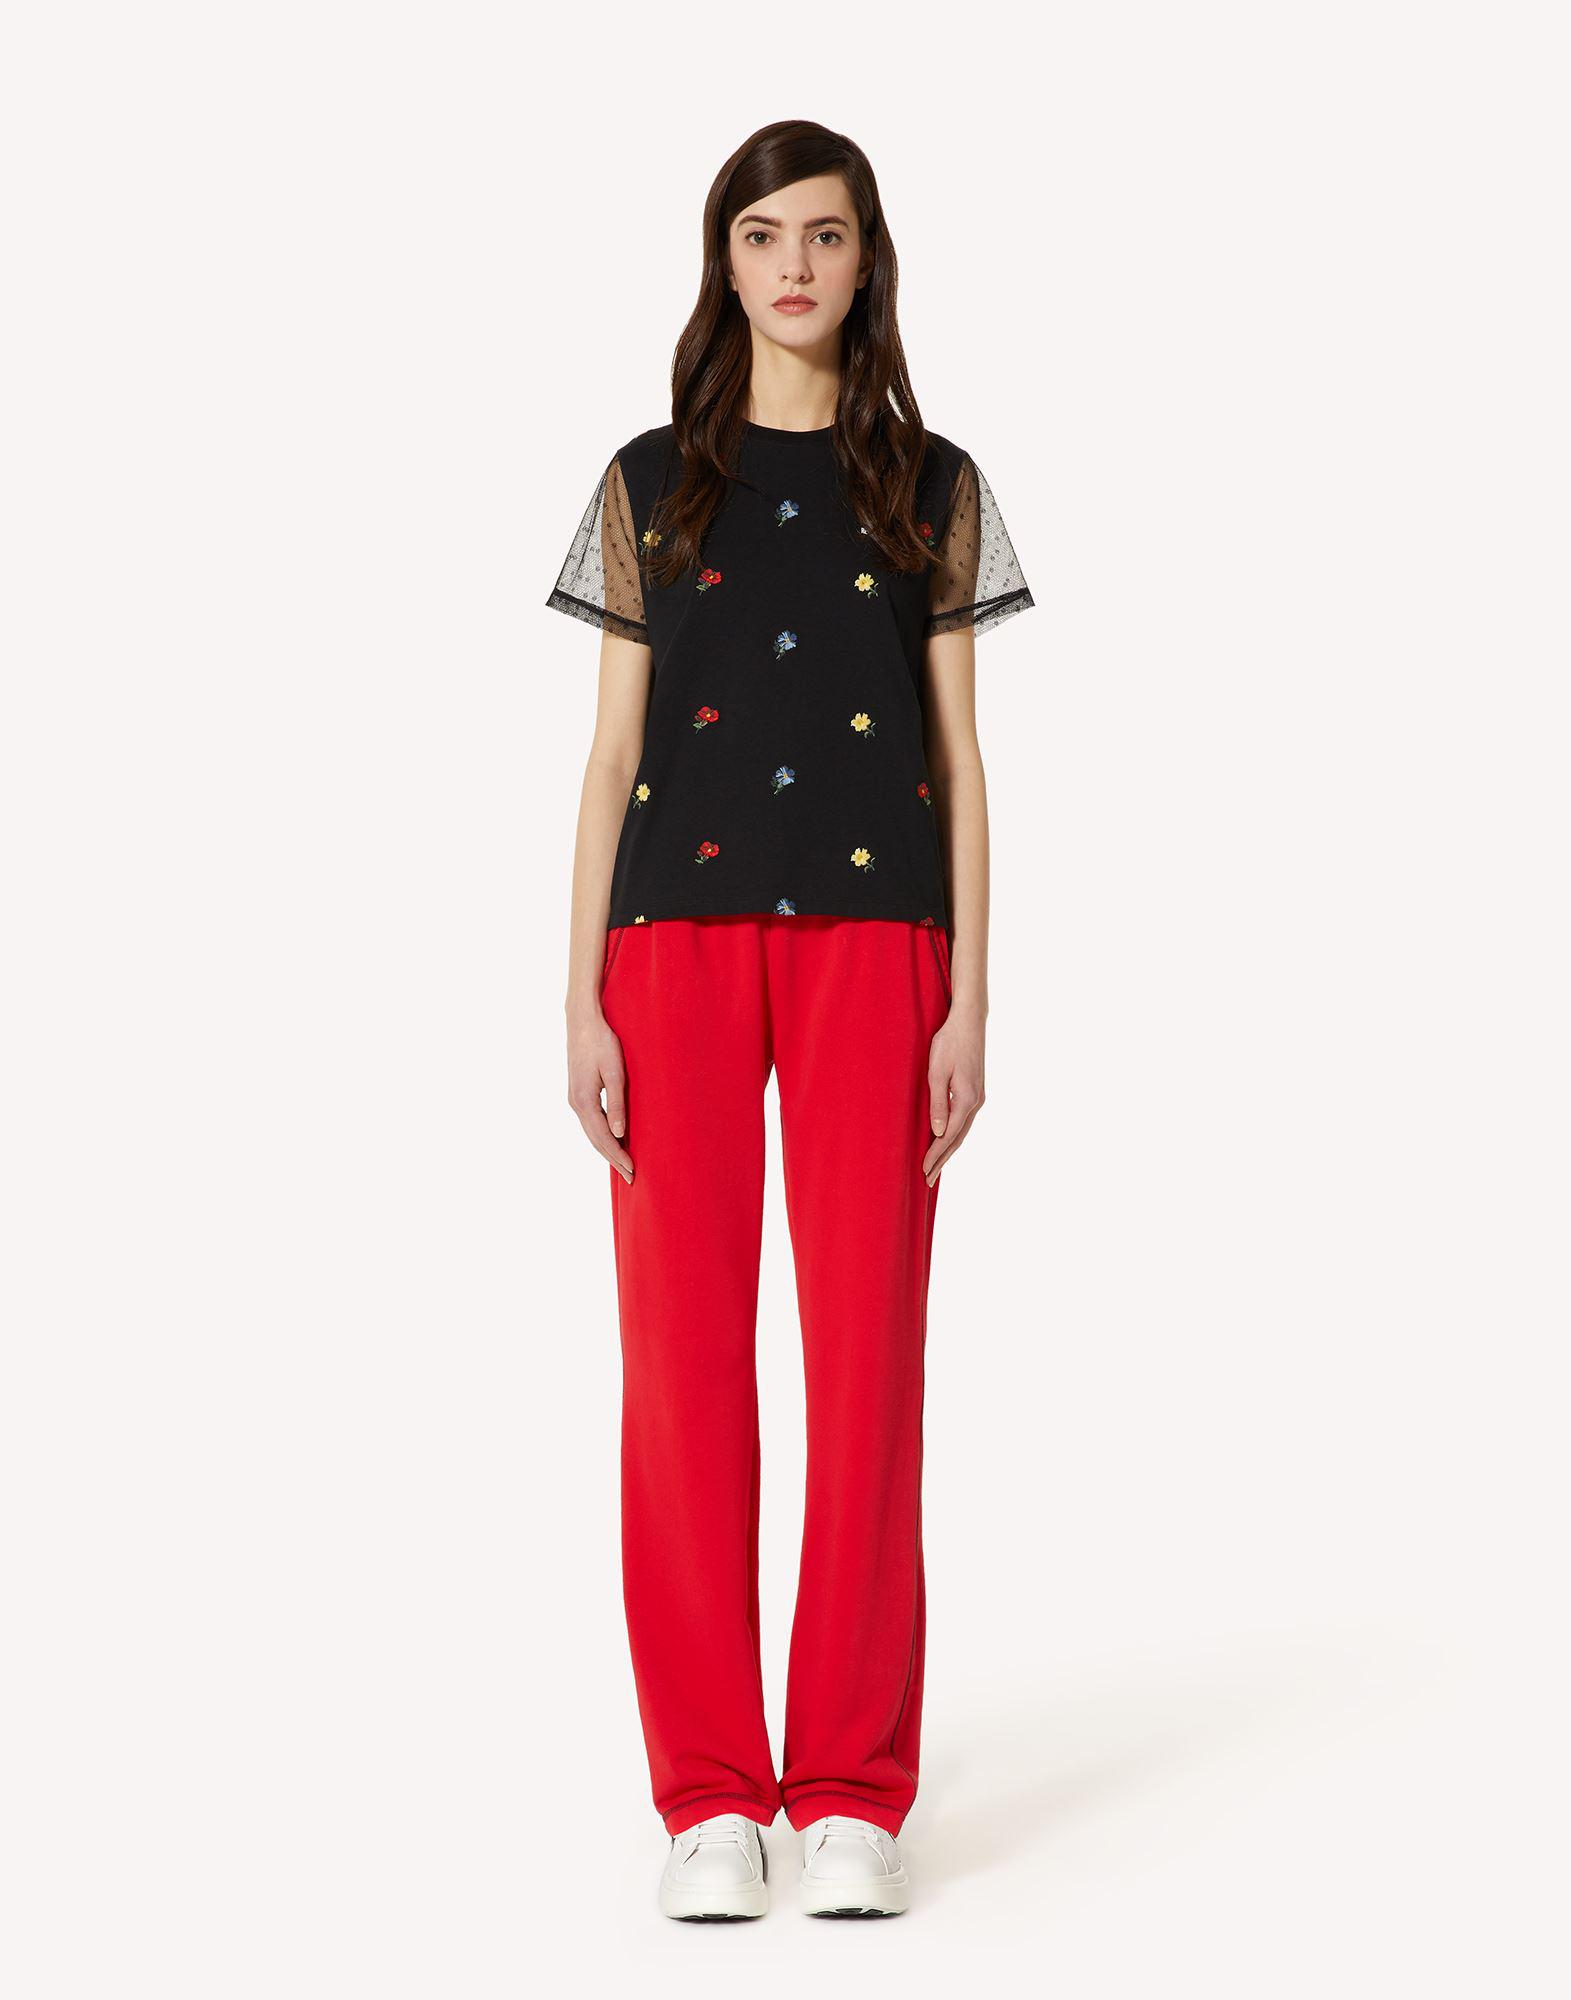 T-SHIRT WITH DELICATE FLOWERS EMBROIDERY